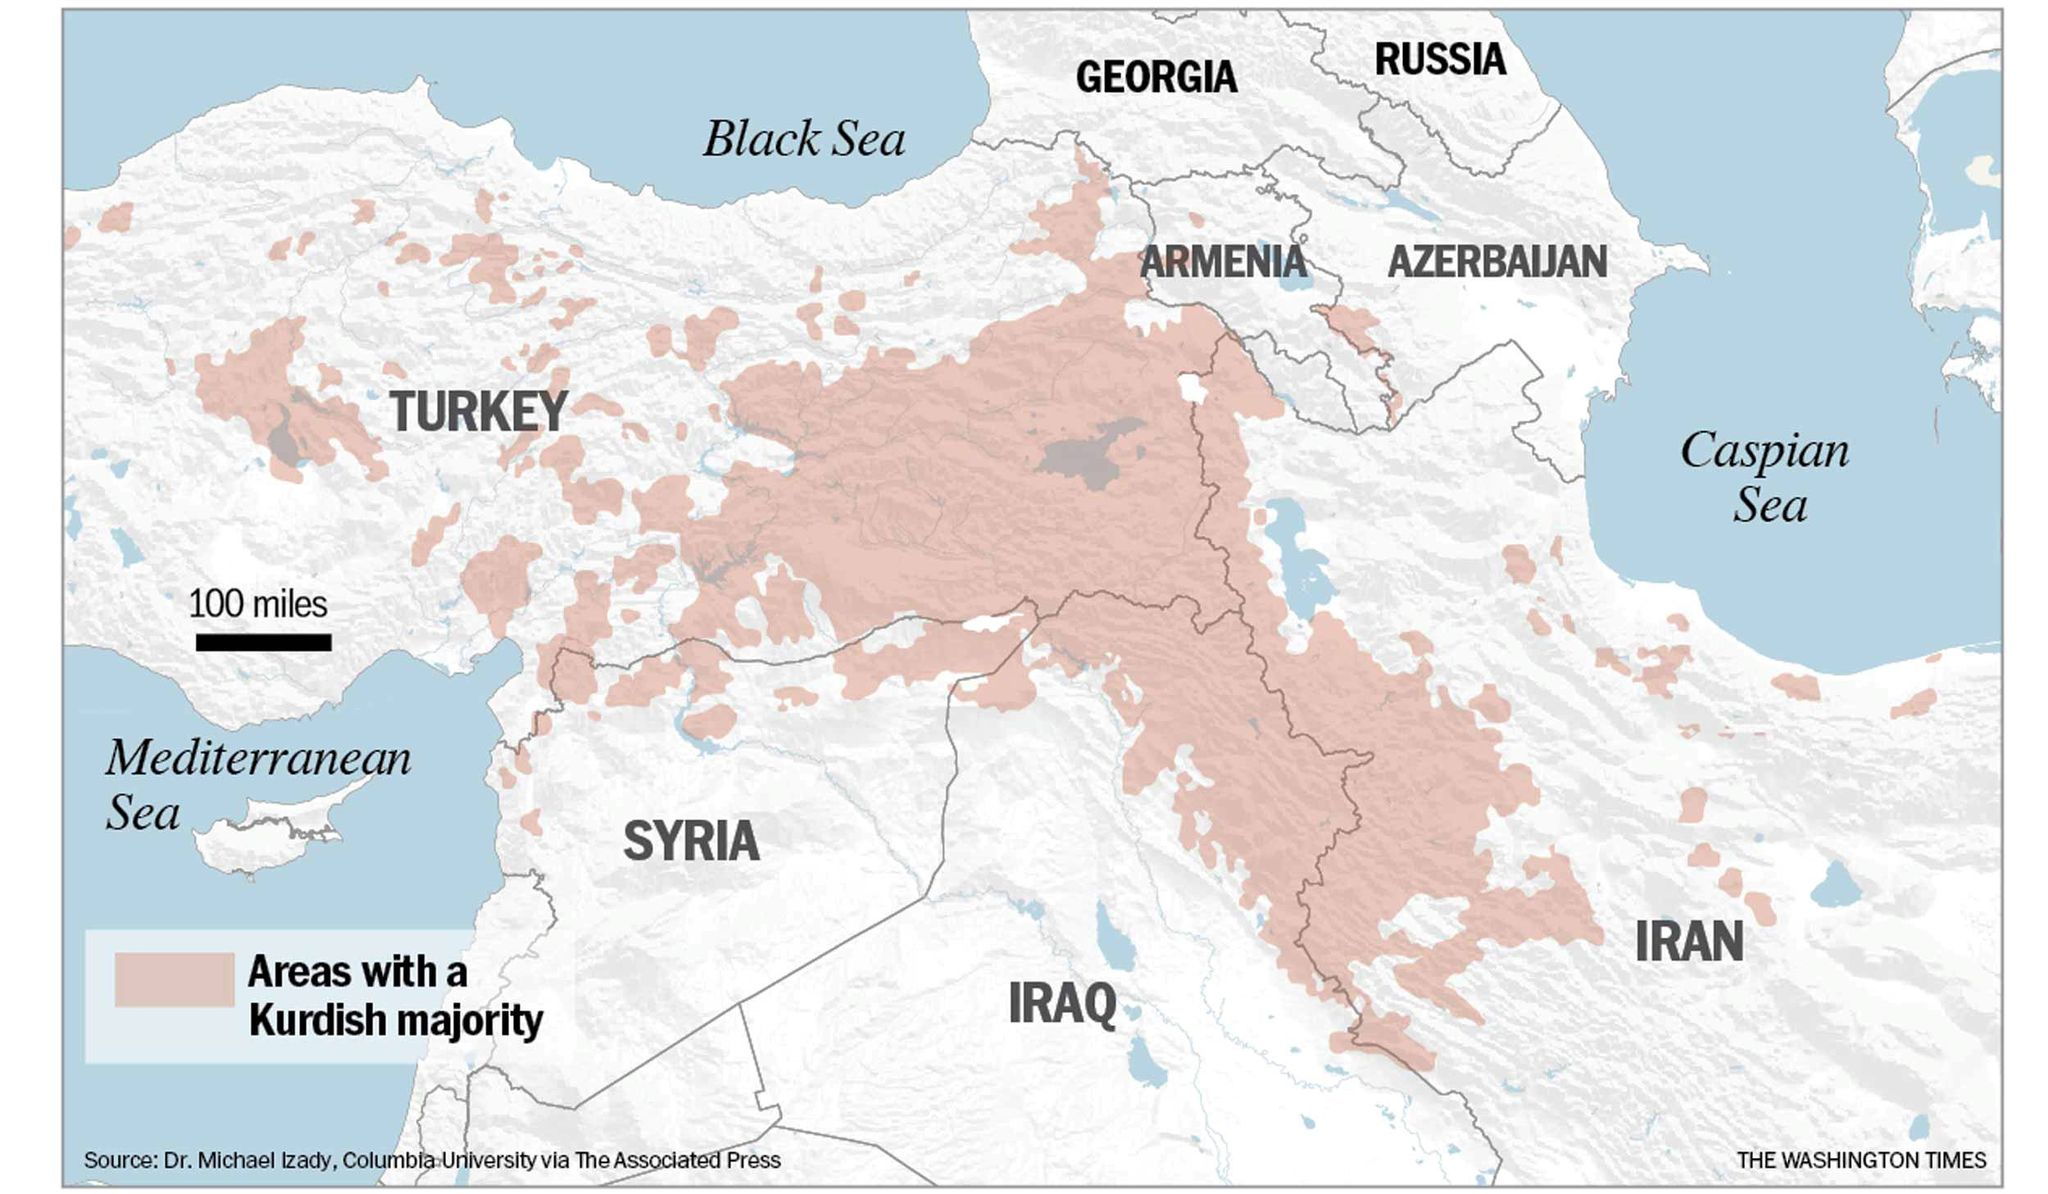 Deciphering confusion about the Kurds